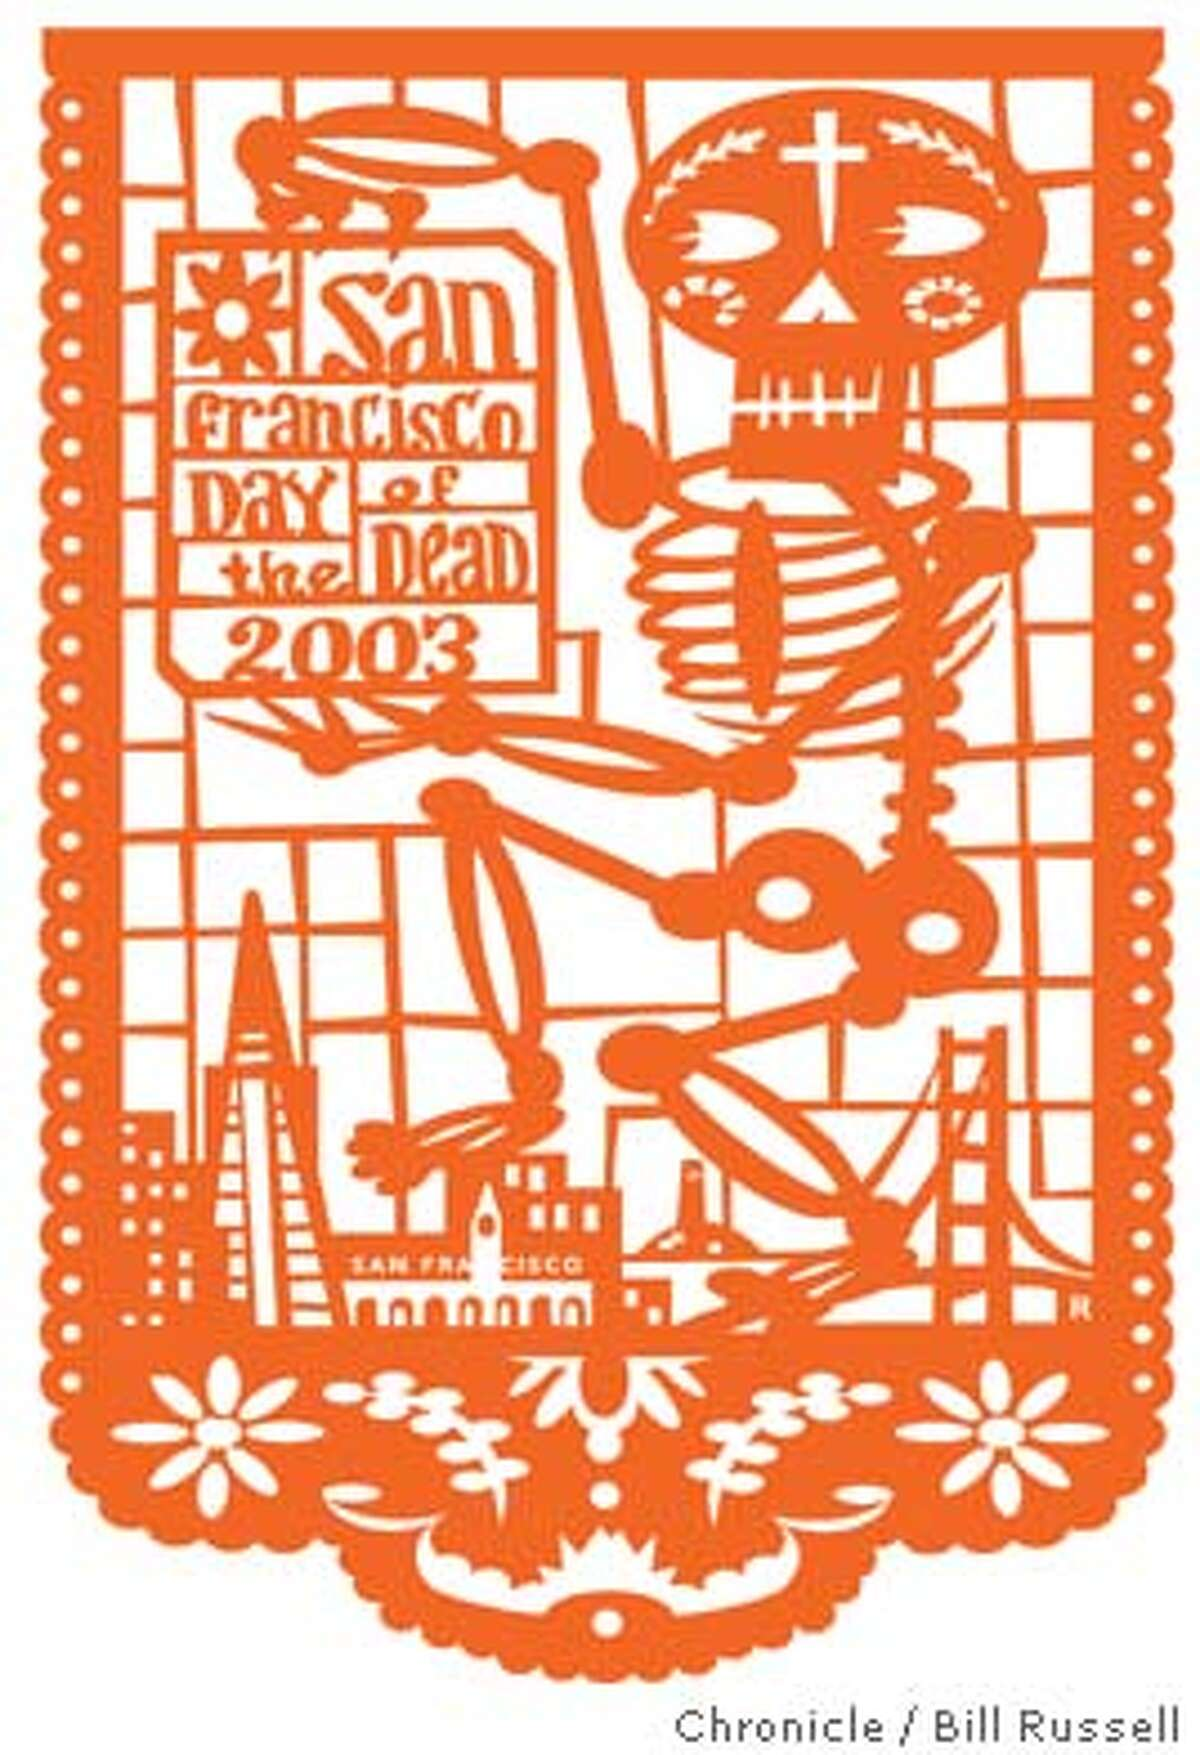 Papel Picado. Chronicle illustration by Bill Russell. Download a printable PDF of this illustration [836 Kbytes]